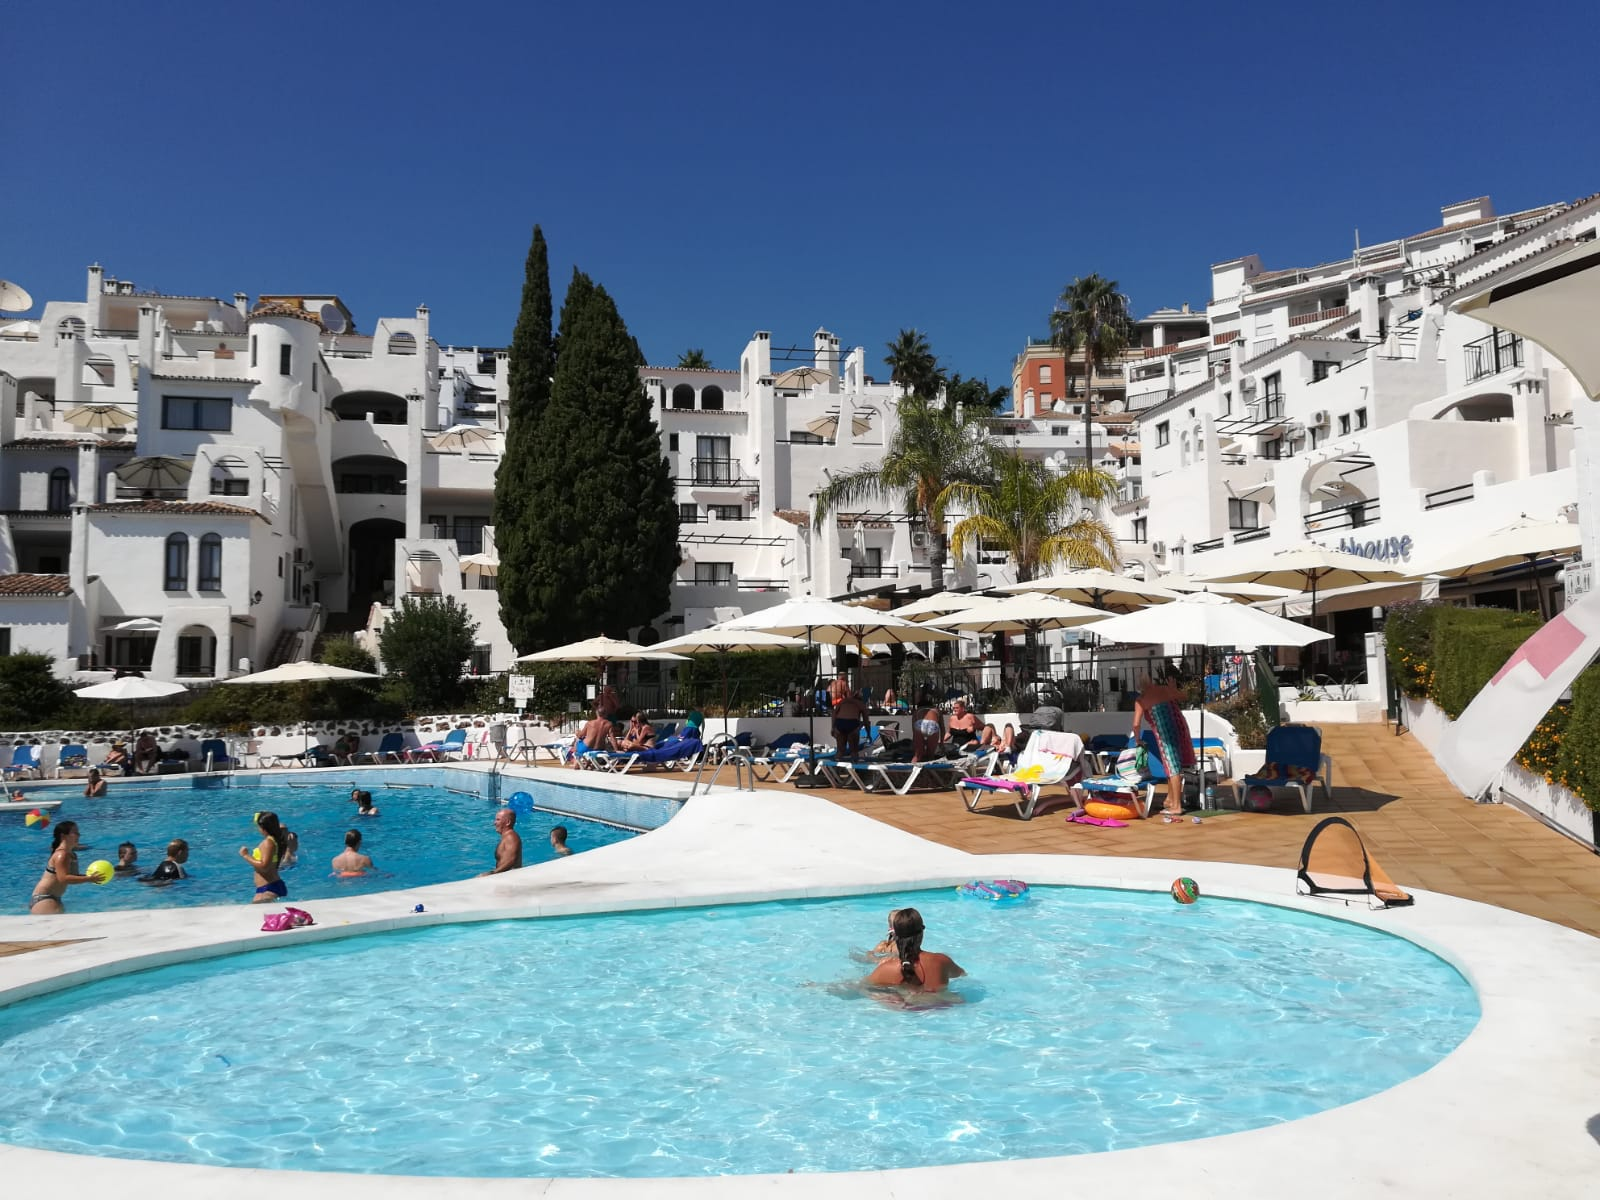 Benalmadena 4 bedrooms apartment for sale with air conditioning heating heated pool